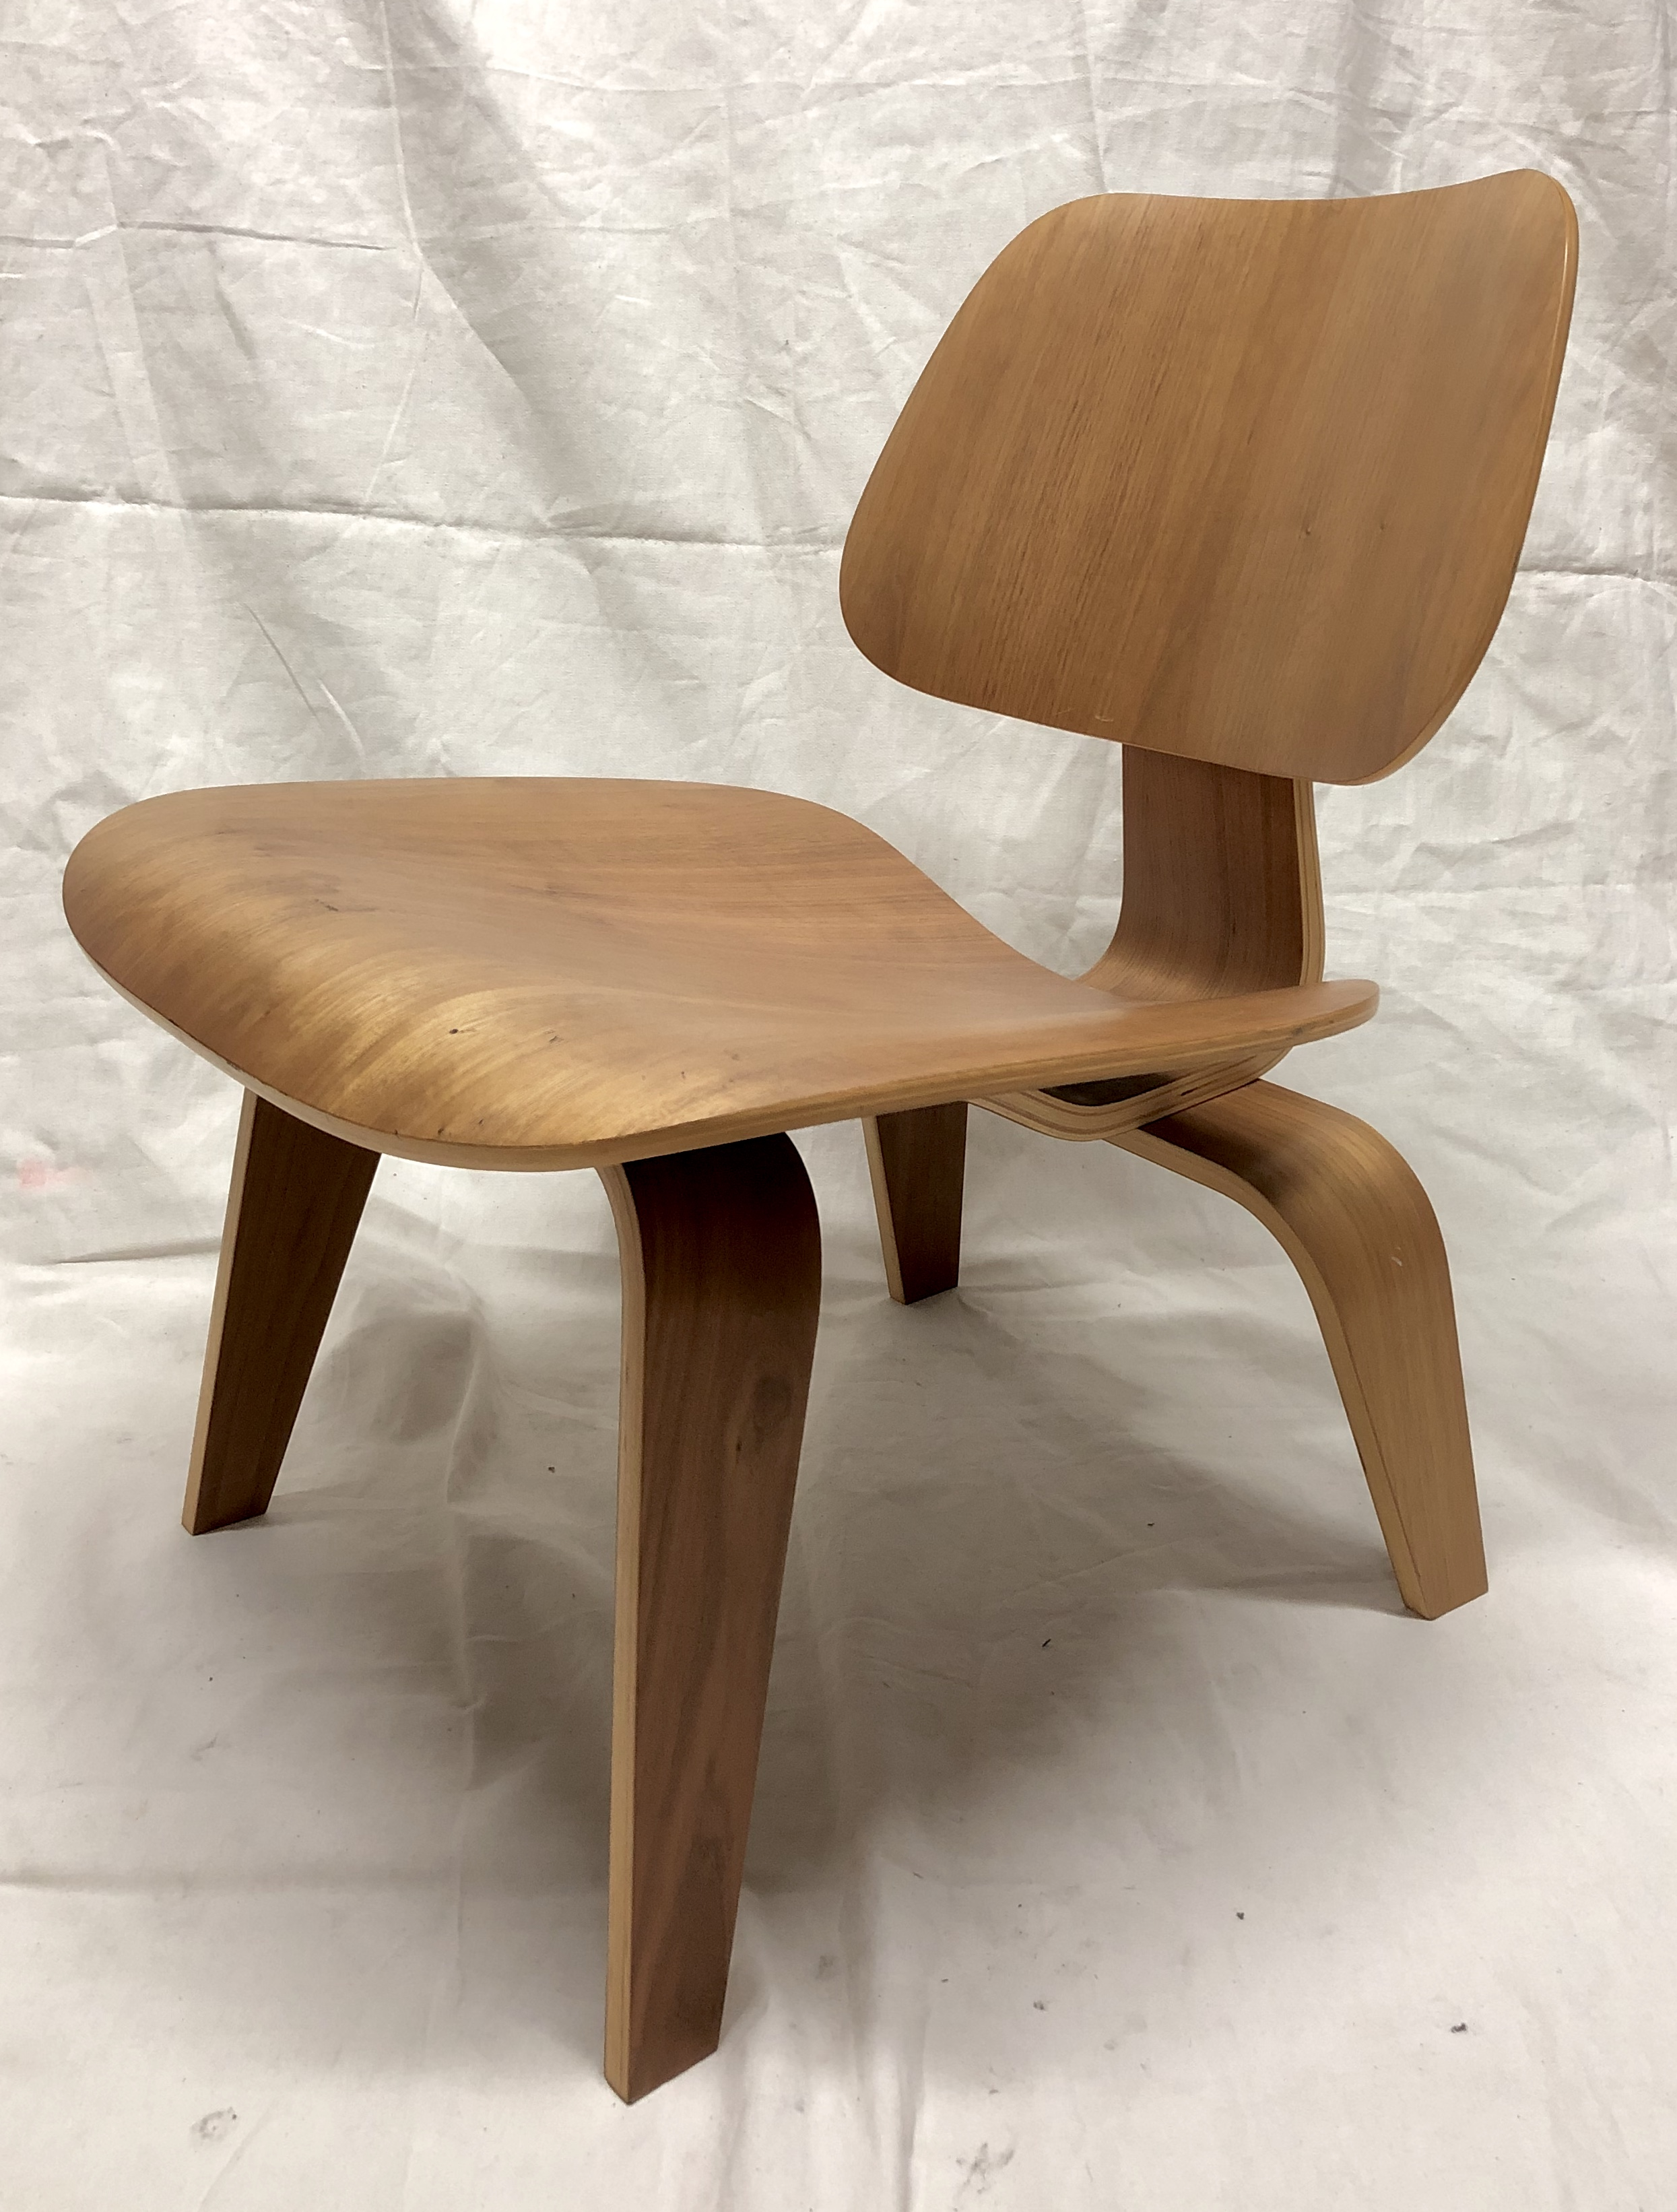 Eames Molded Ply Chair - $175